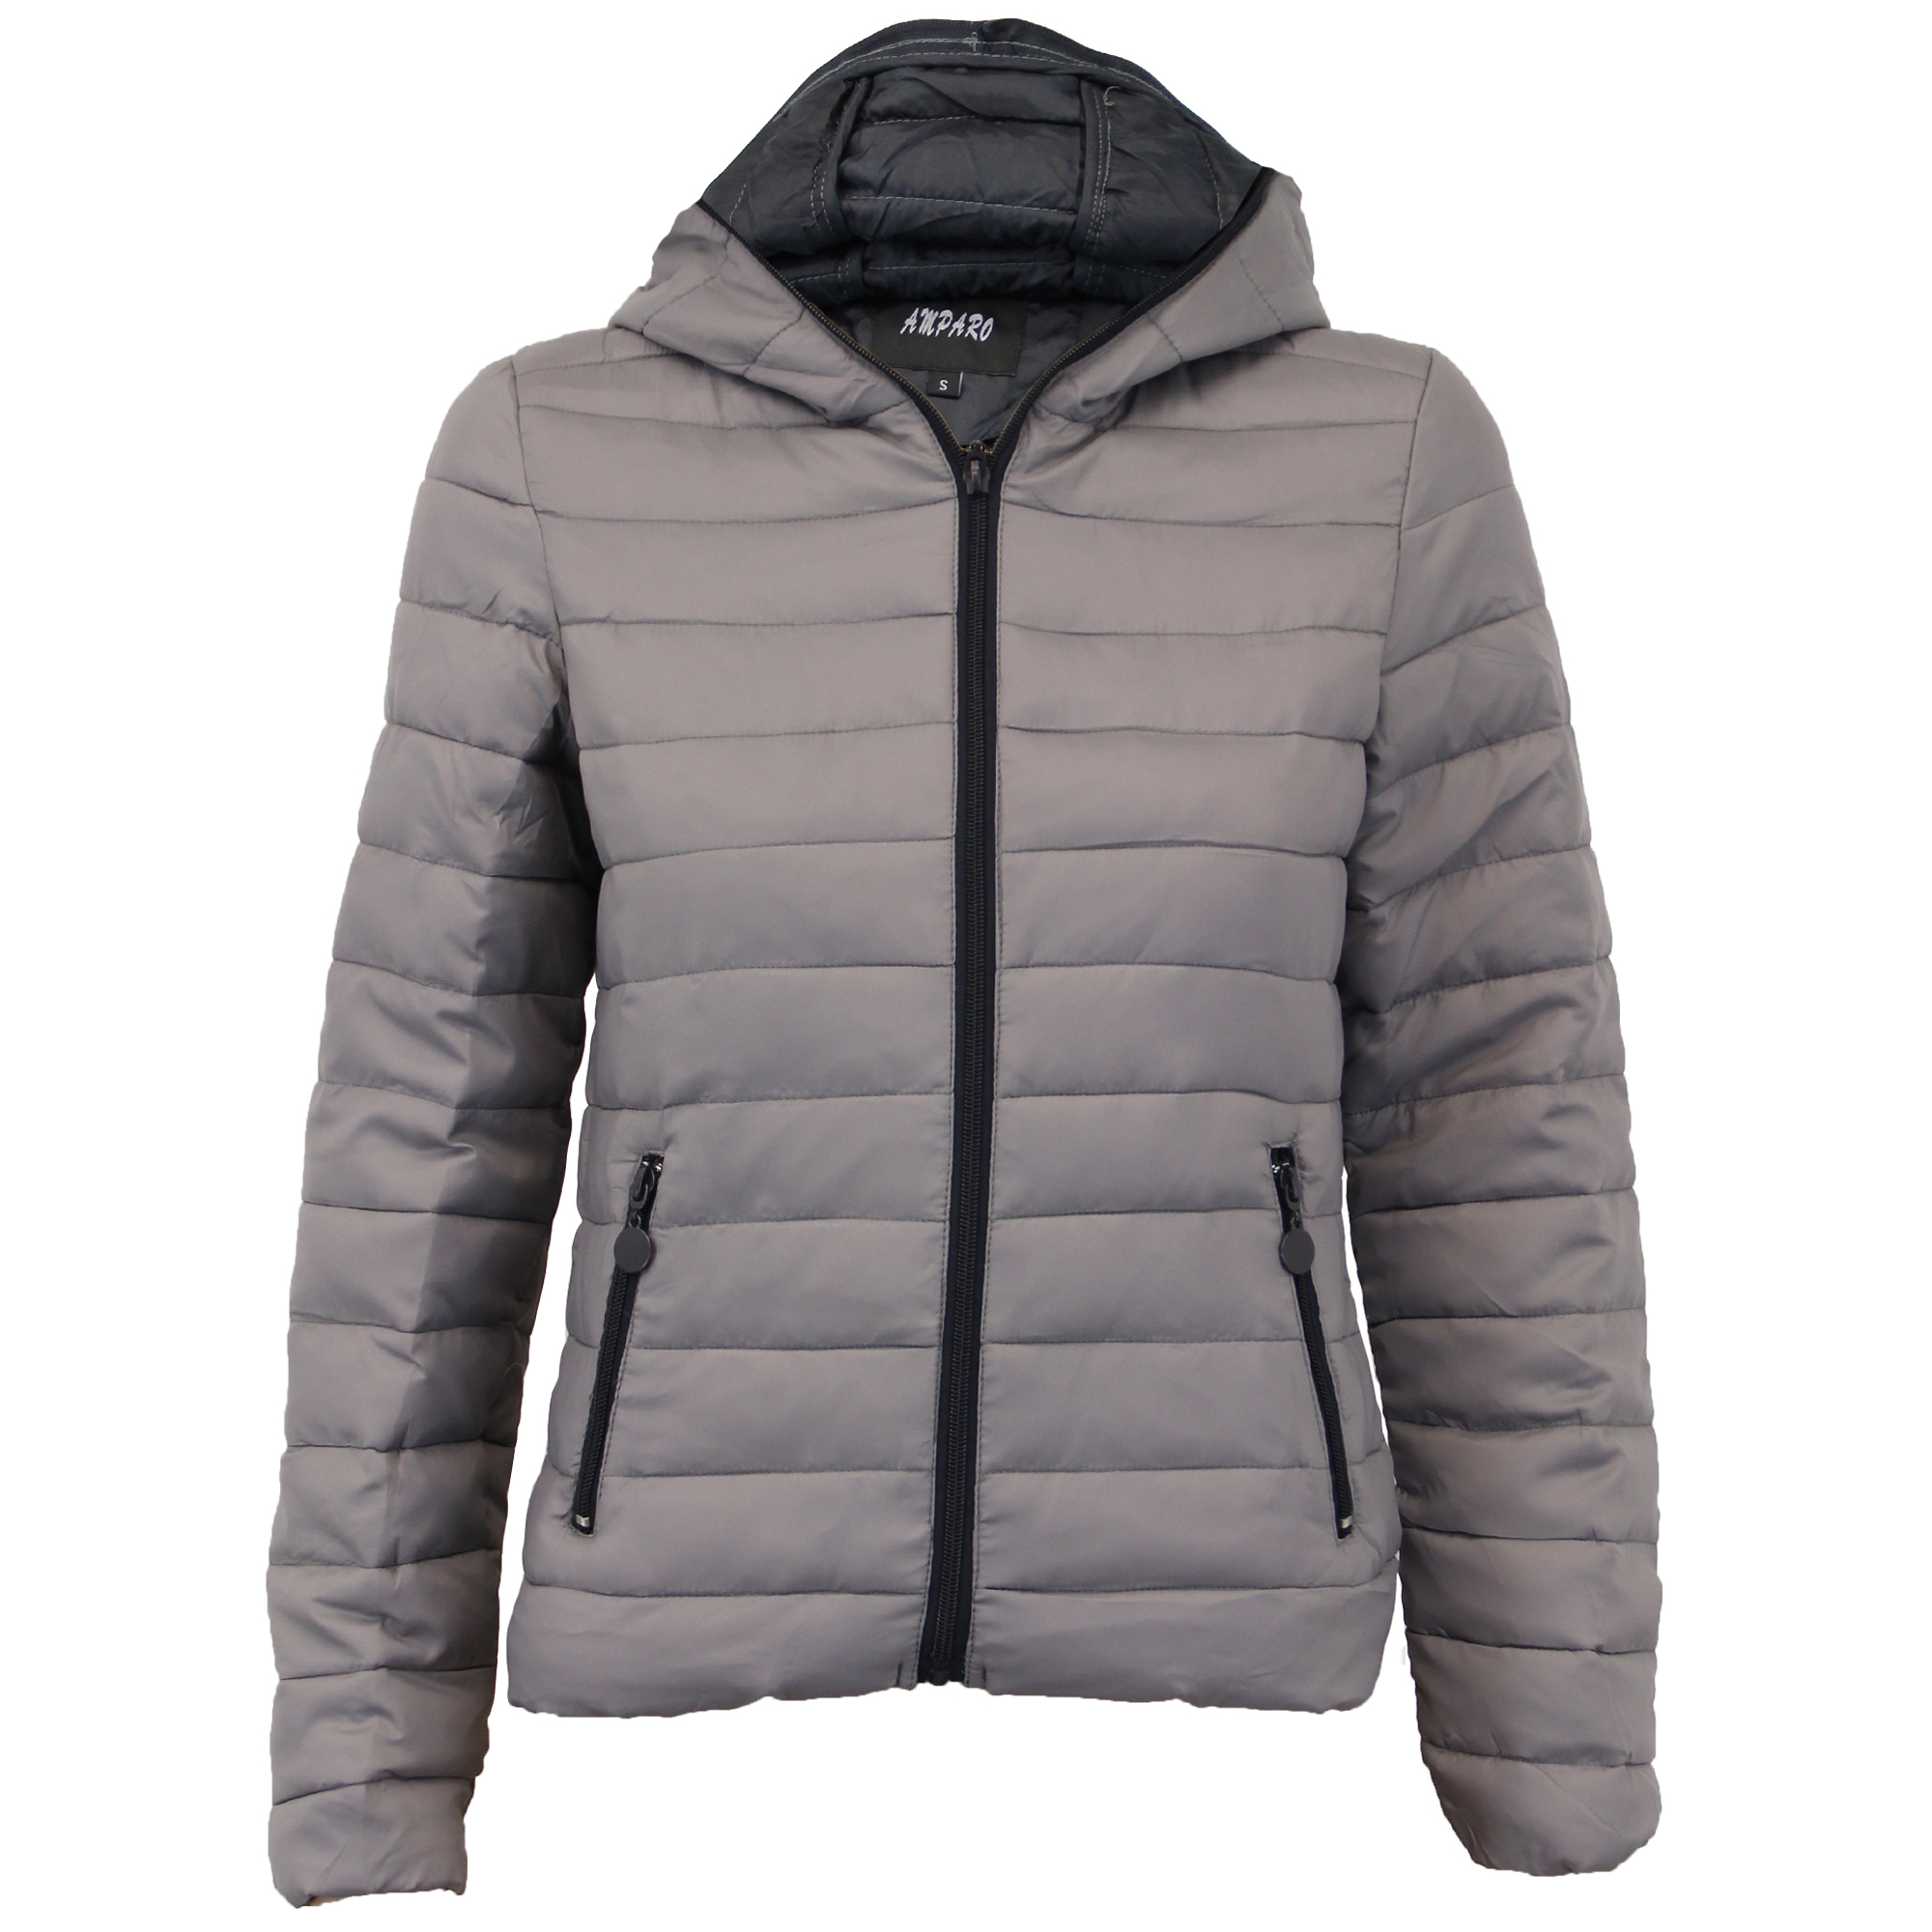 Padded Jackets For Women | Jackets Review : ladies quilted jacket sale - Adamdwight.com